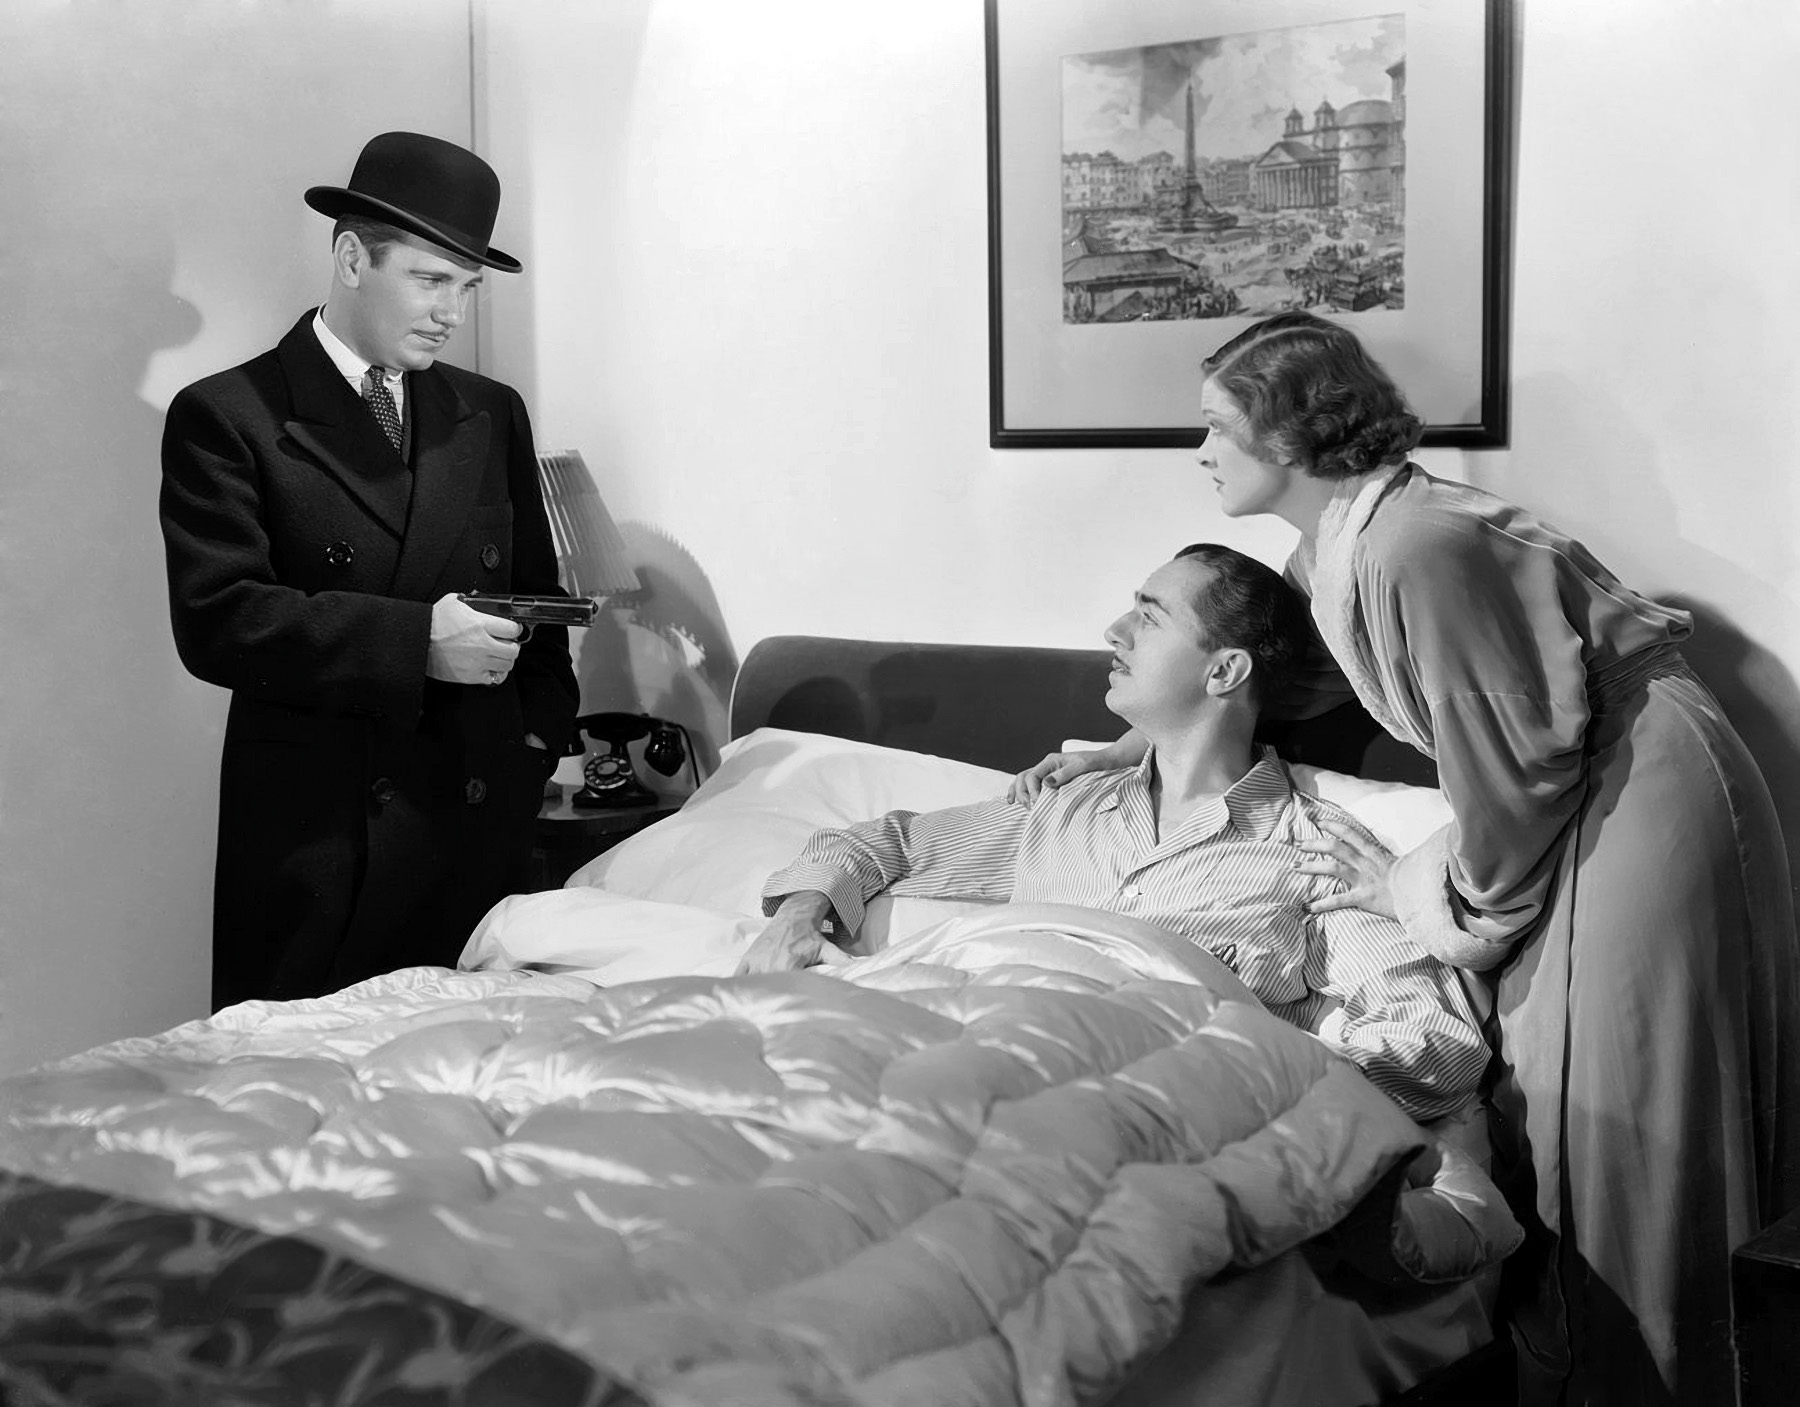 William Powell in The Thin Man with (L to R) Walter Long, William Powell, Myrna Loy